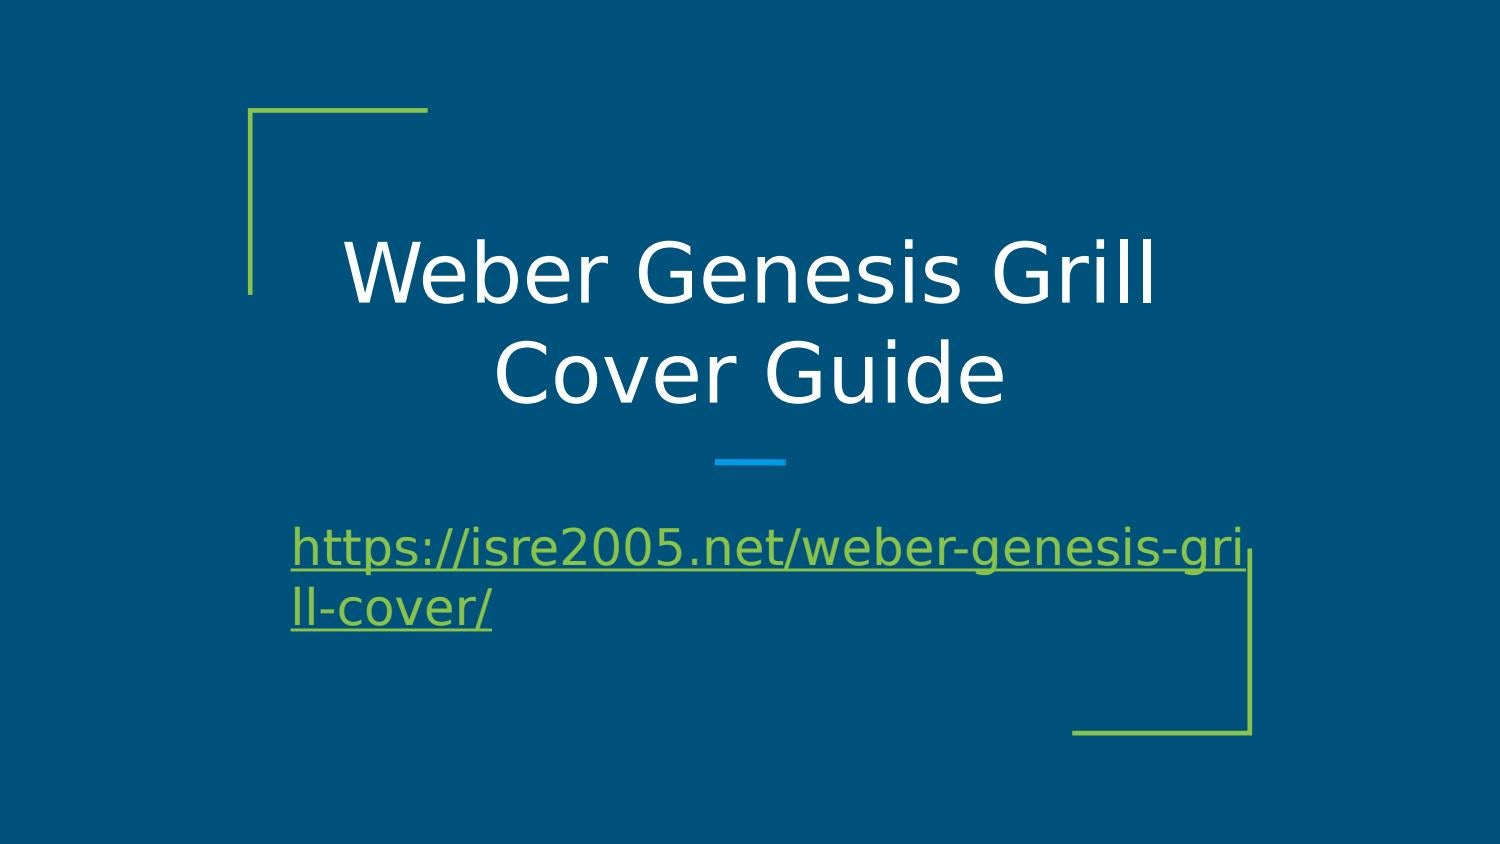 Weber Genesis Gas Grill Cover Guide Presentation